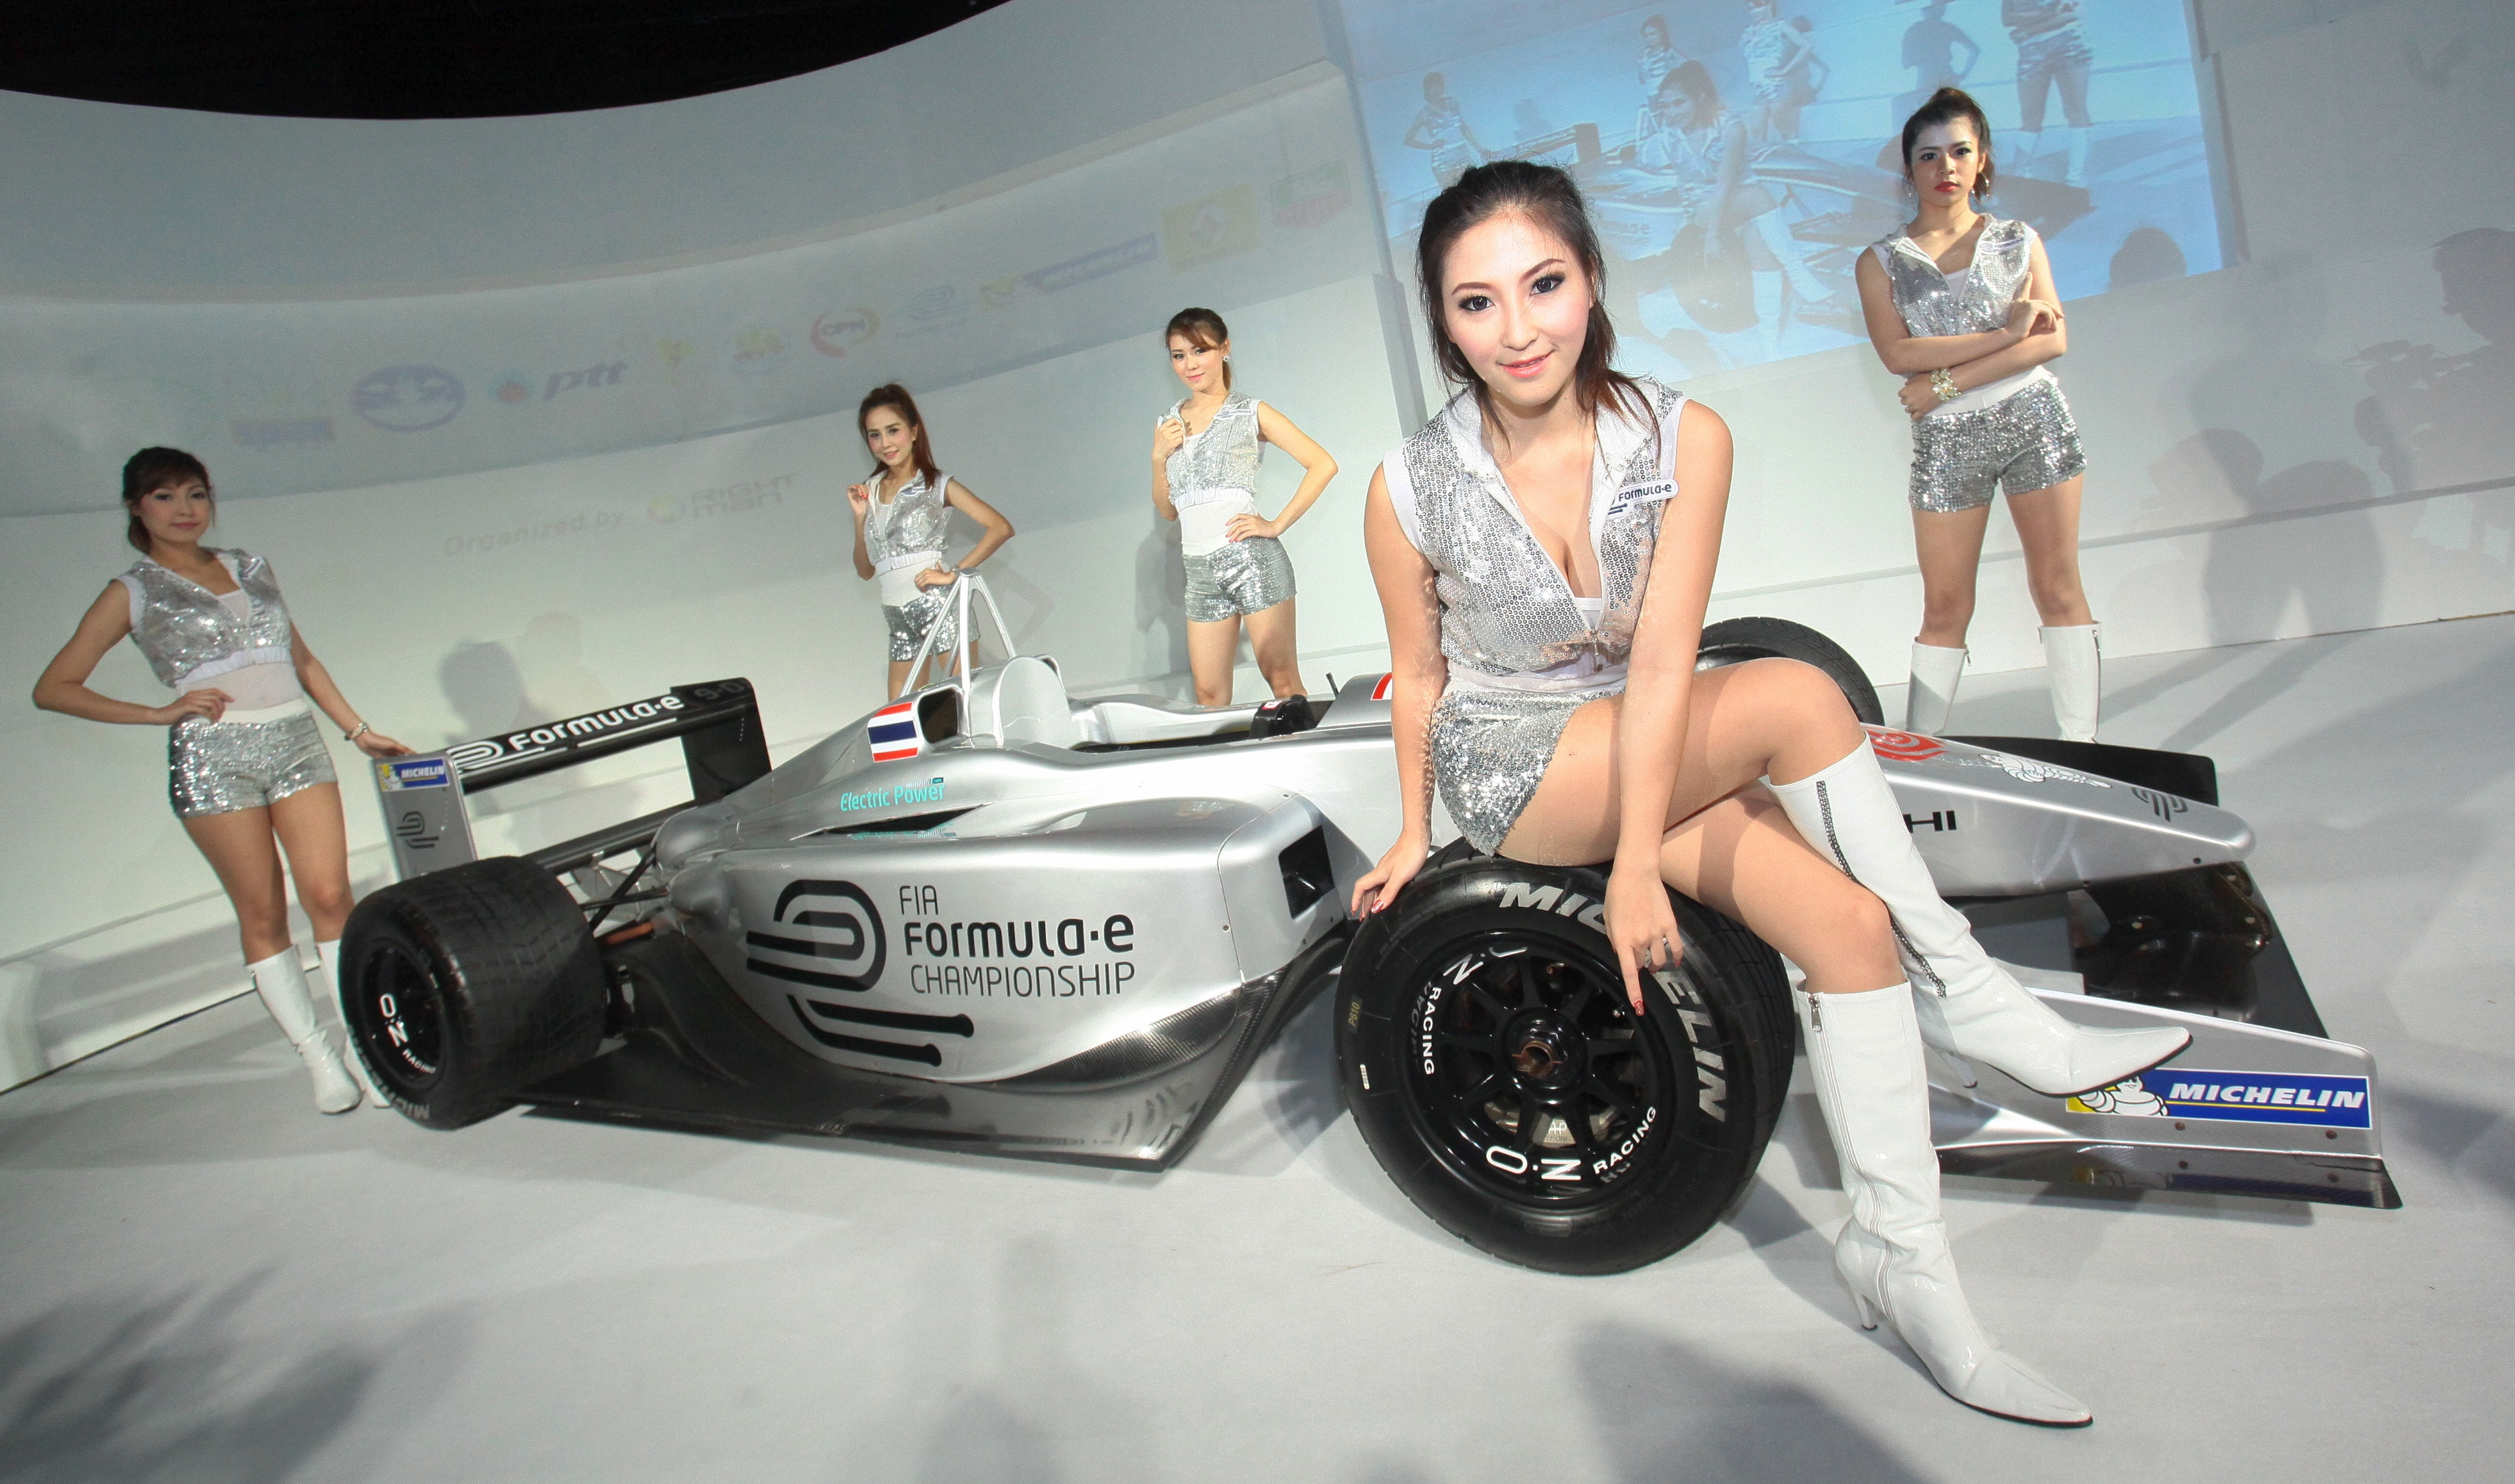 Cars For Sale Miami >> Formula E - Bangkok joins list of candidate cities